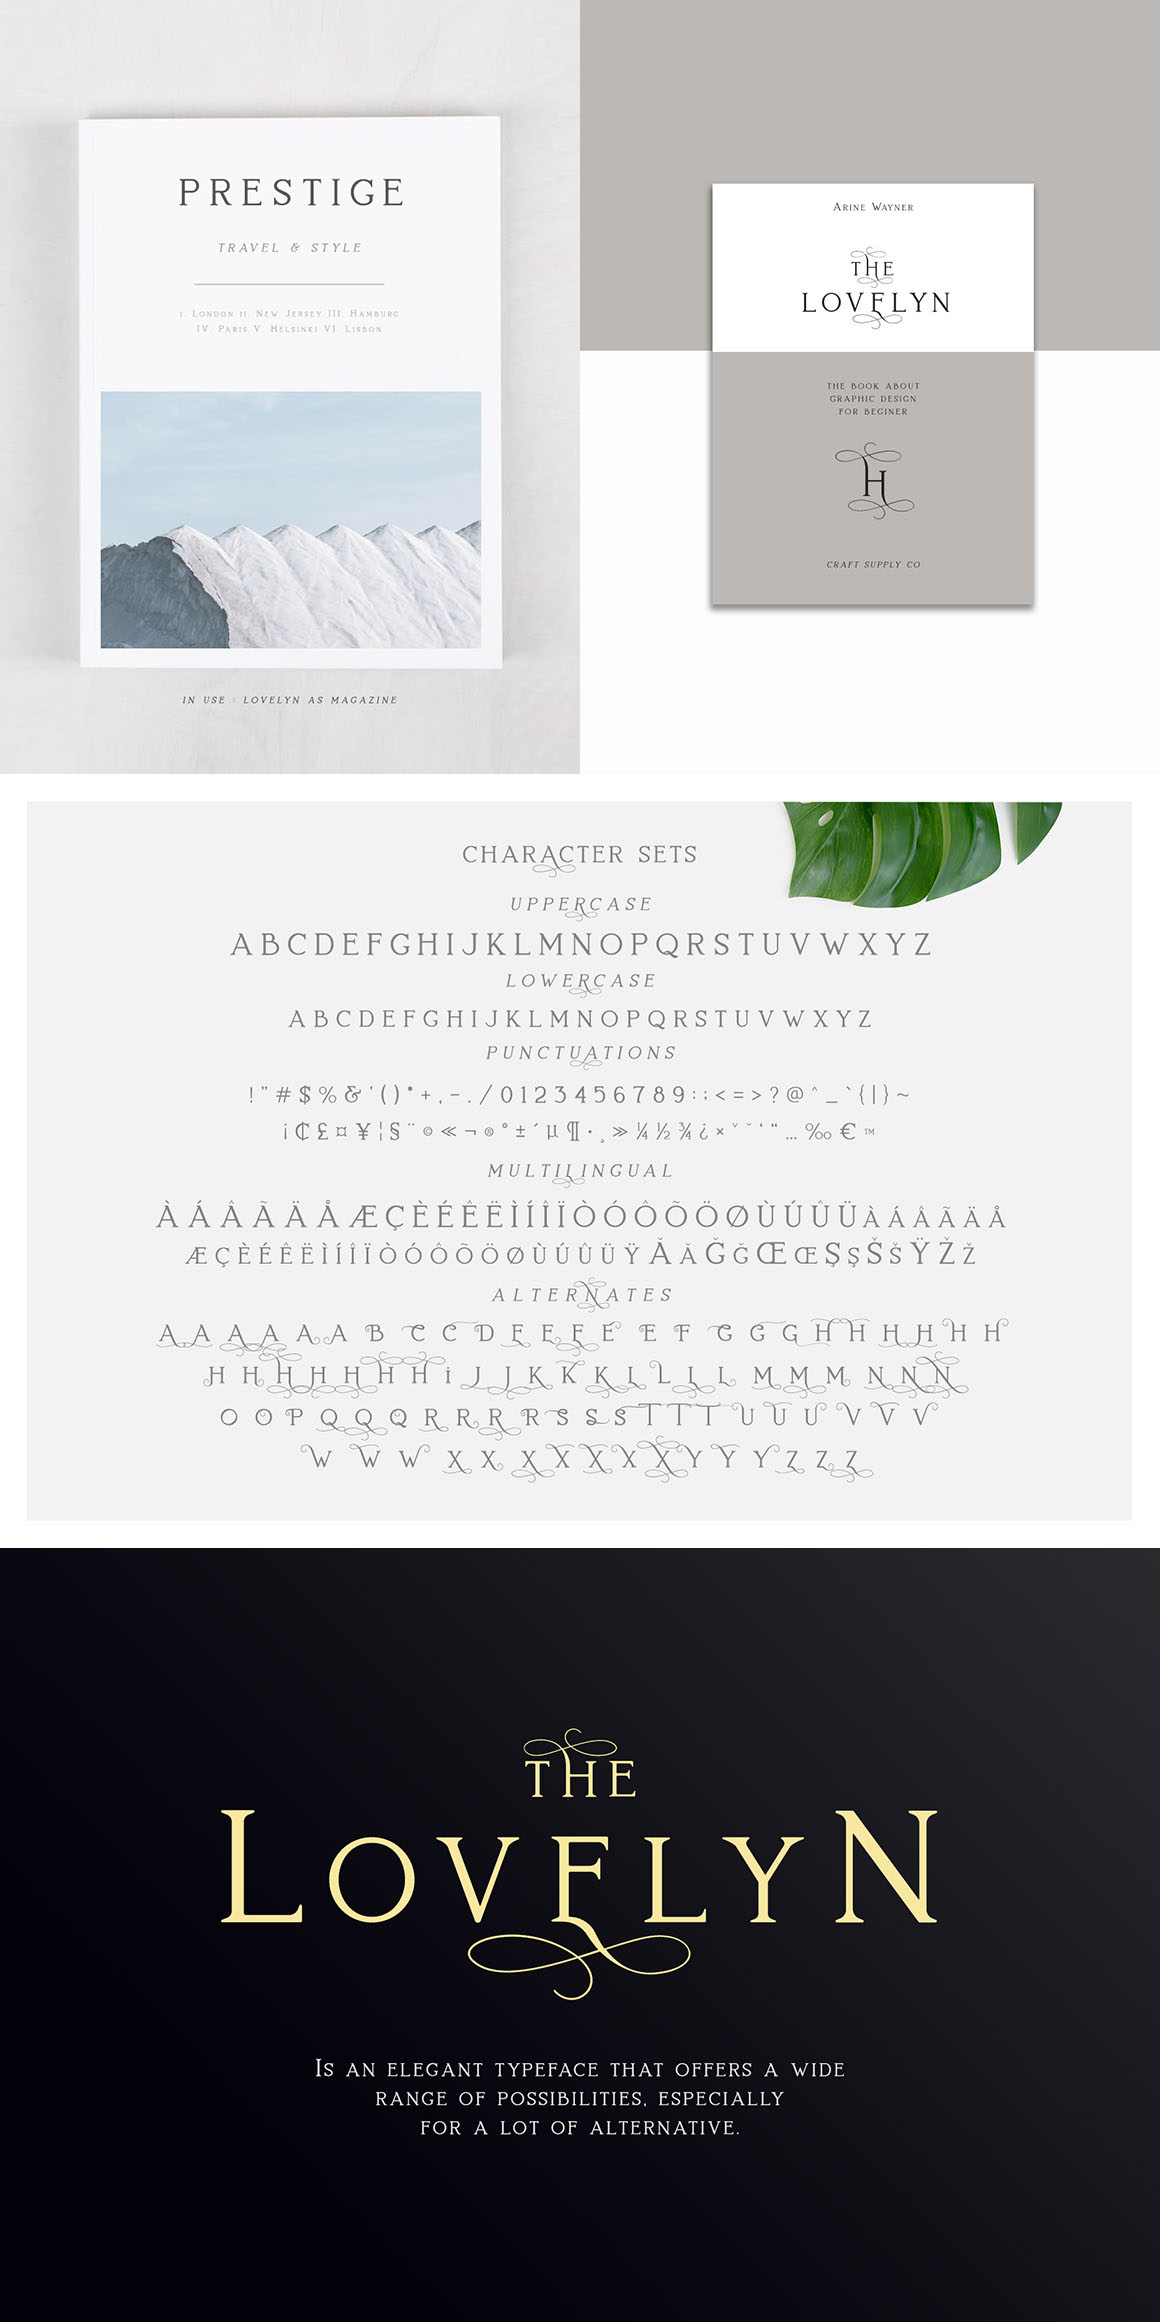 Lovelyn - Classy and Beauty Serif Font - Design Cuts